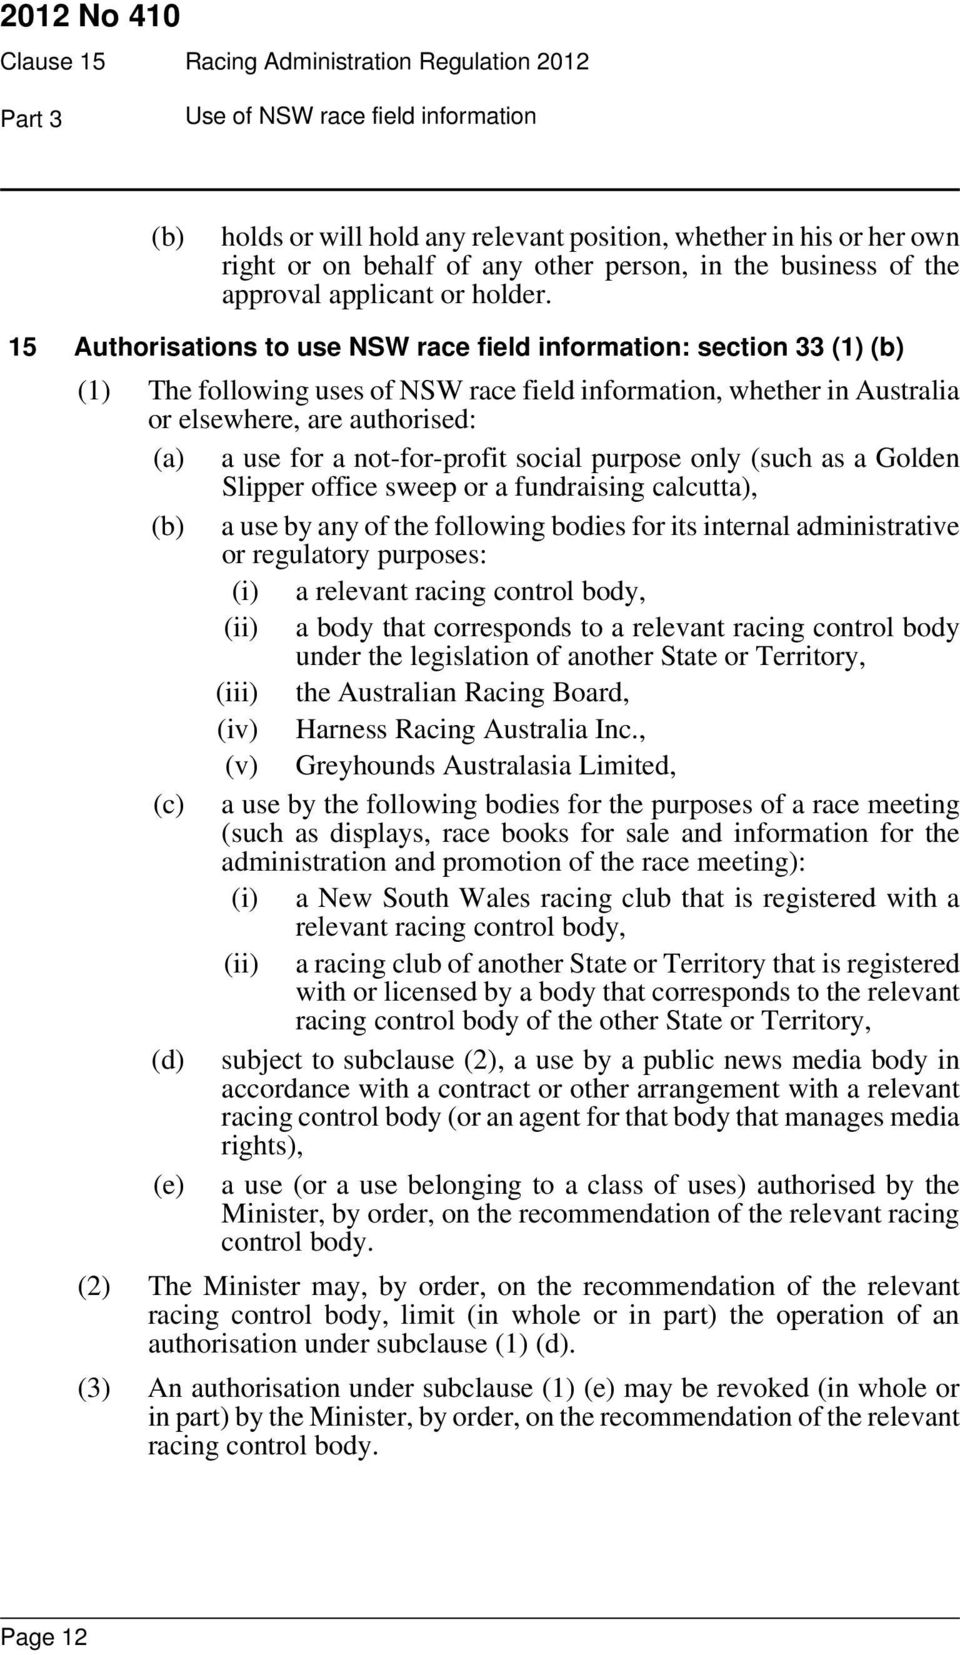 15 Authorisations to use NSW race field information: section 33 (1) (b) (1) The following uses of NSW race field information, whether in Australia or elsewhere, are authorised: (a) a use for a